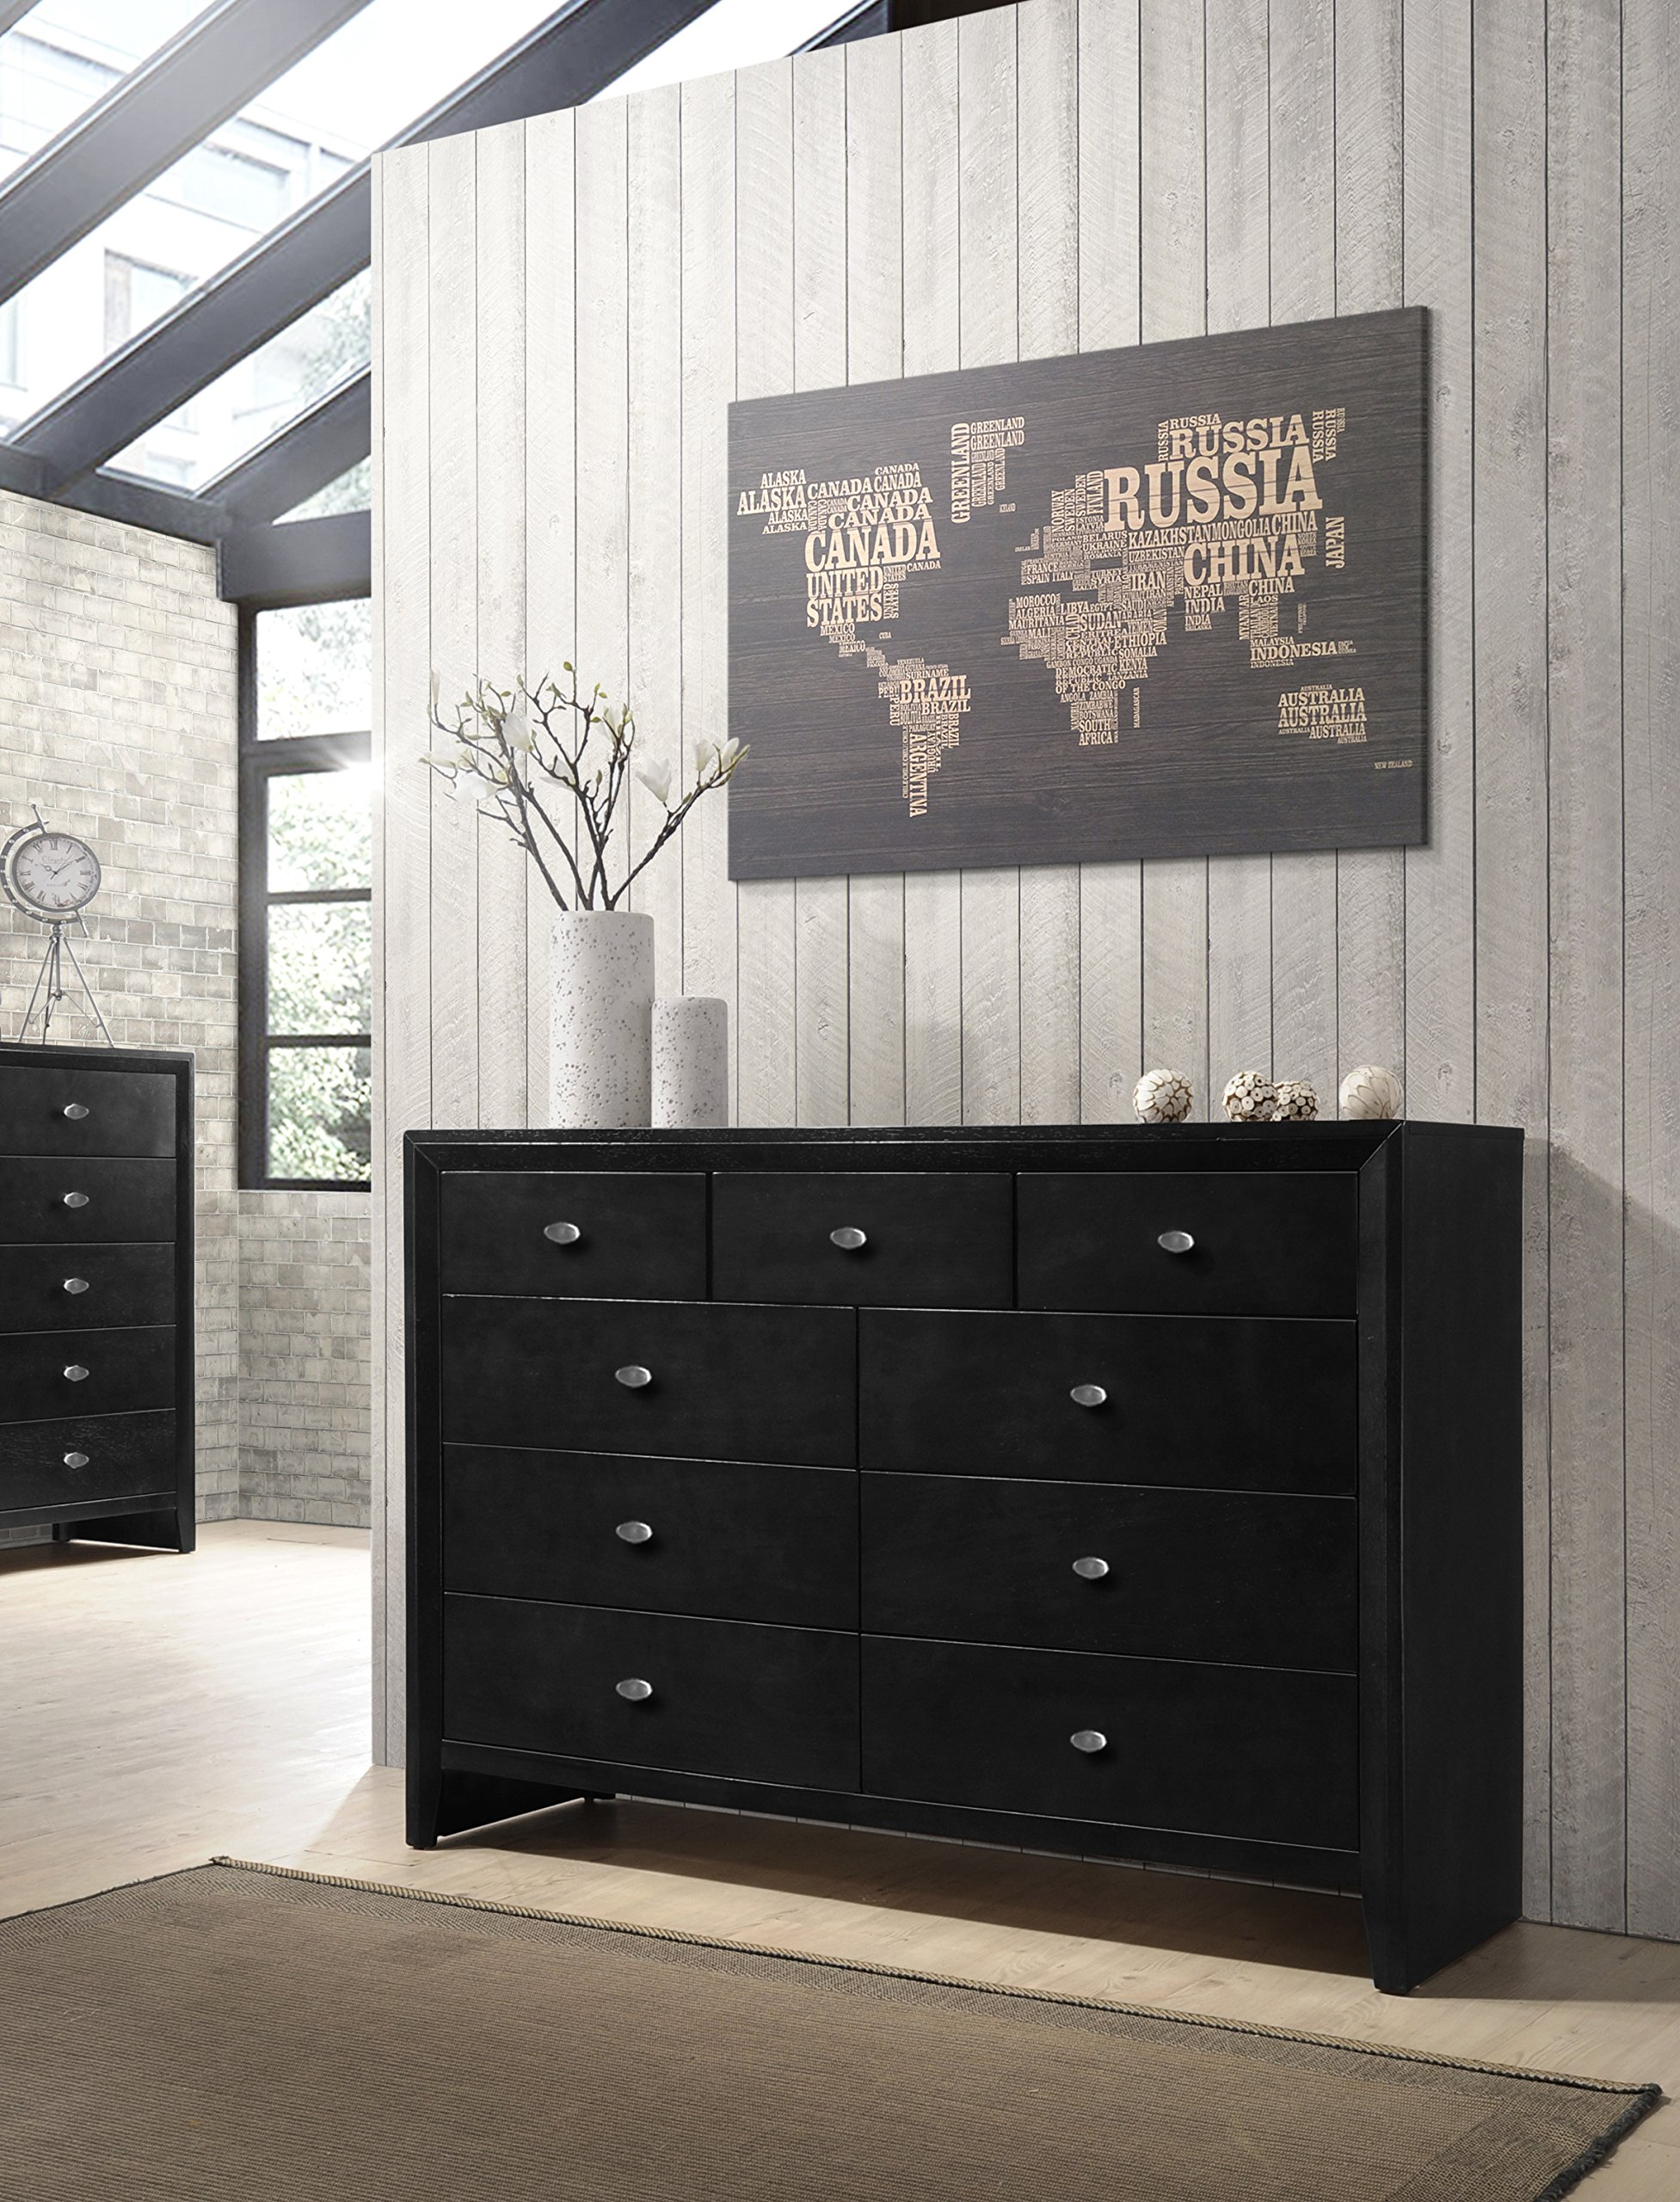 Roundhill Furniture Gloria Black Finish Wood 9 Drawers Dresser